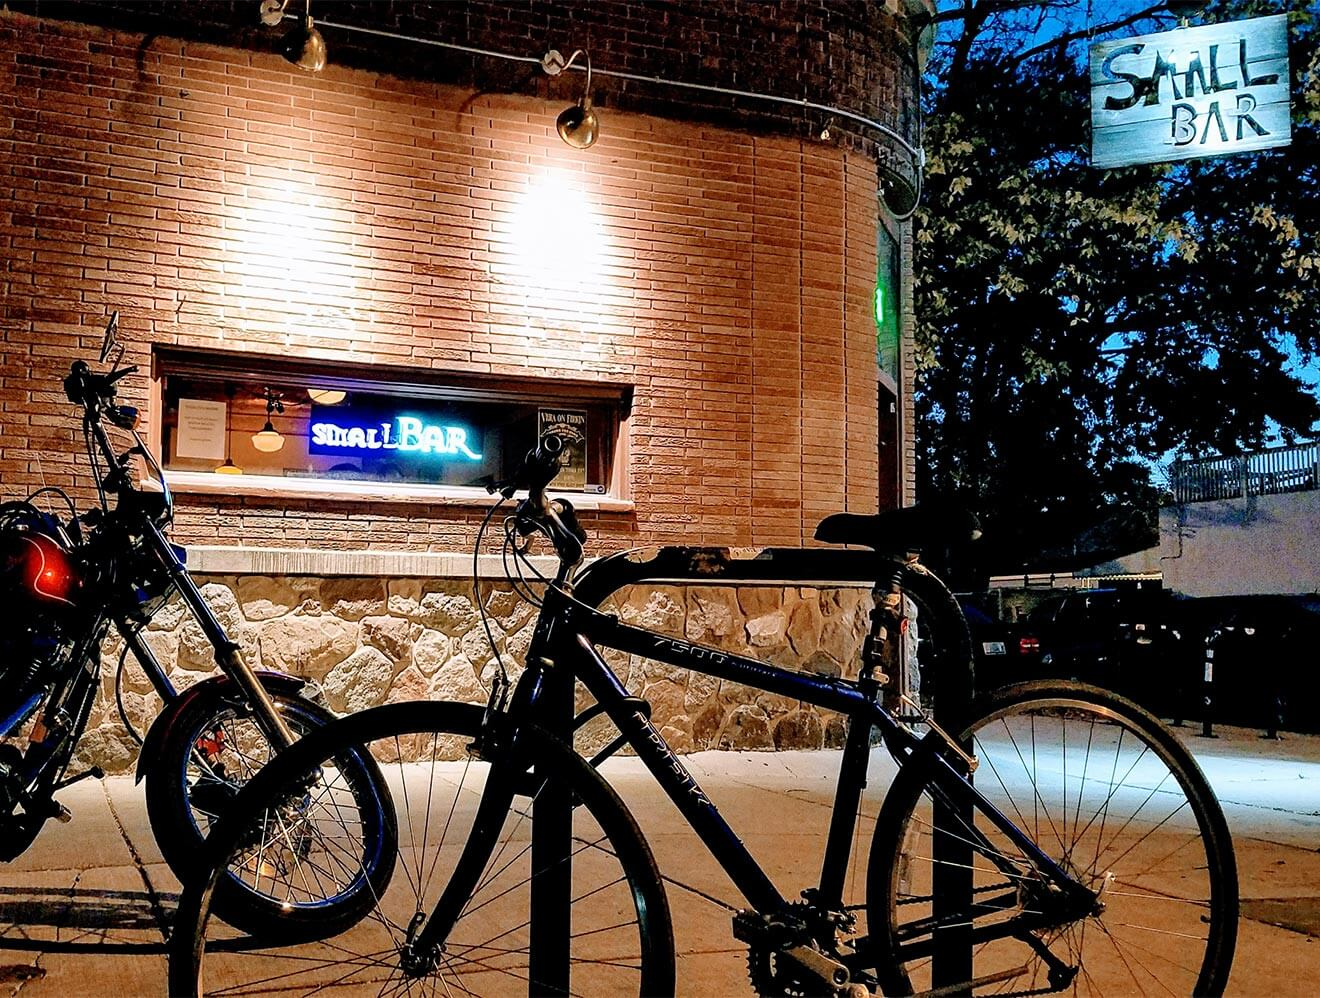 Small Bar, outside view, signage and bike rack